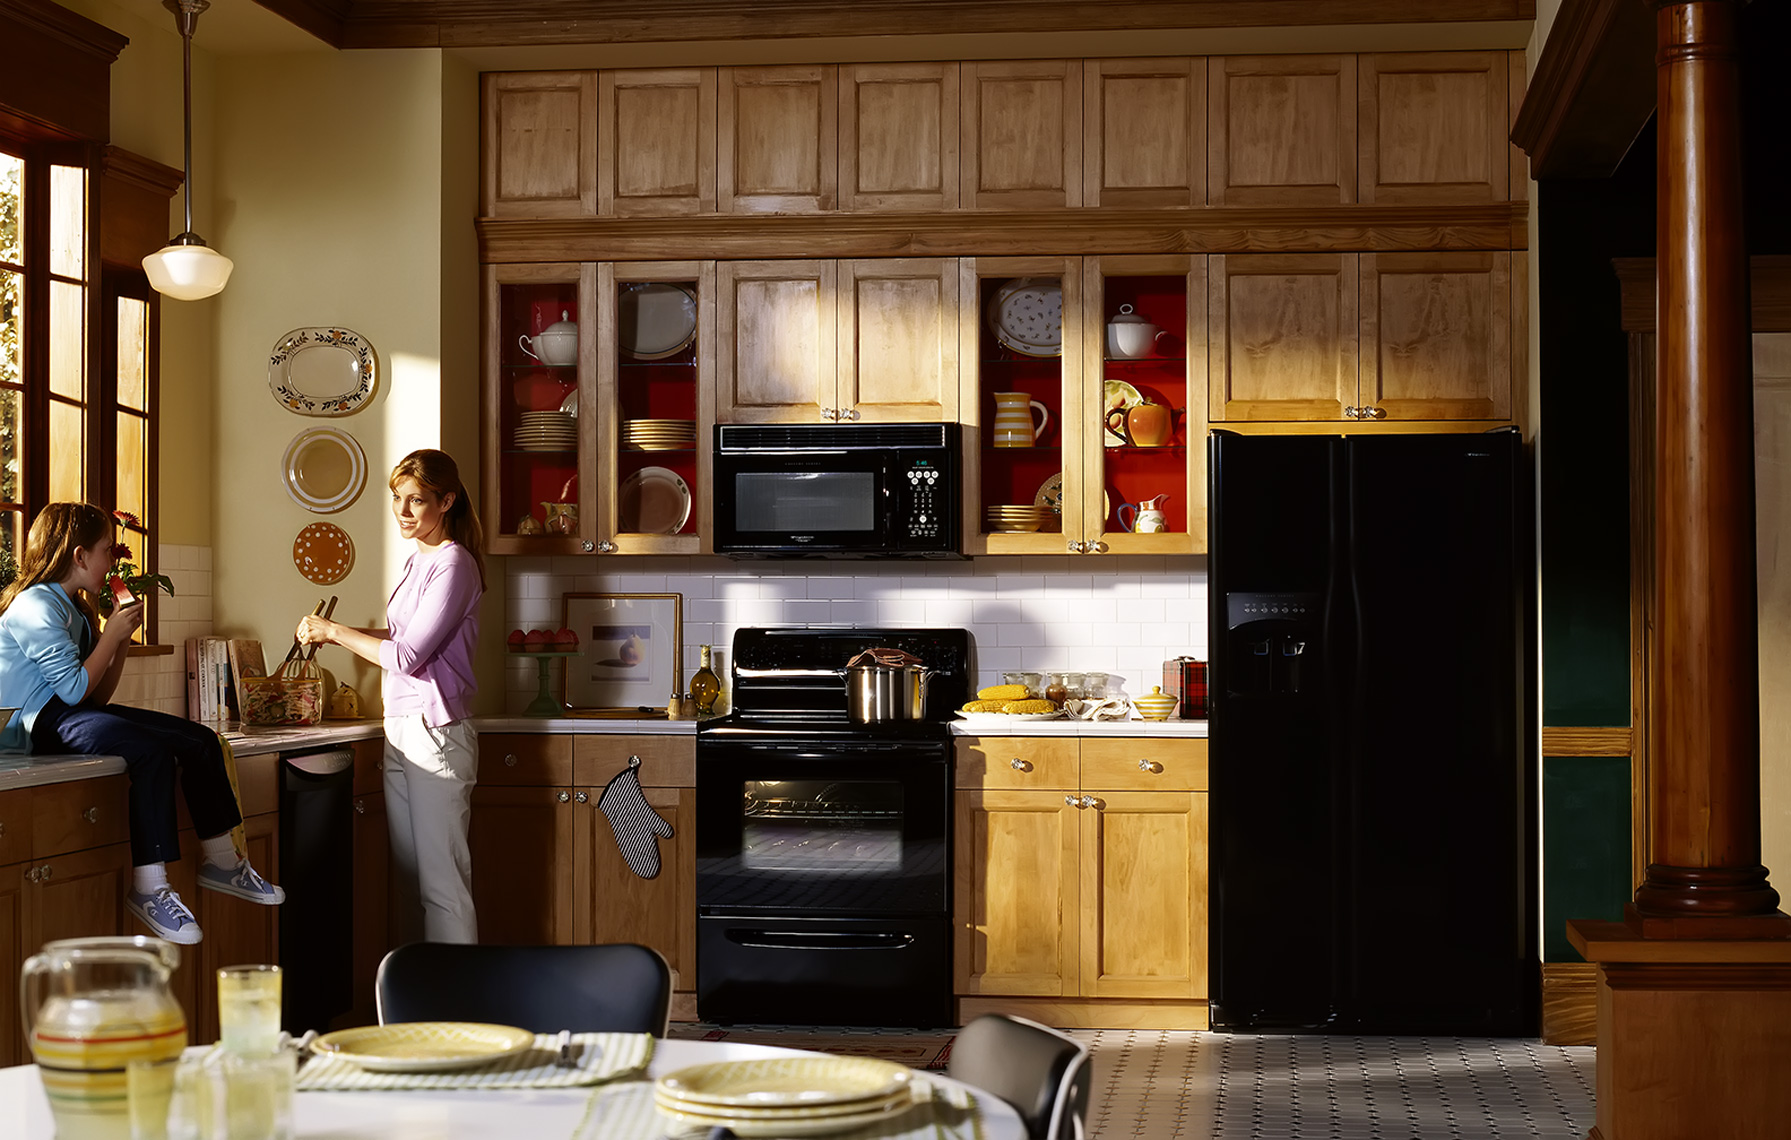 mother and daughter in kitchen with black appliances